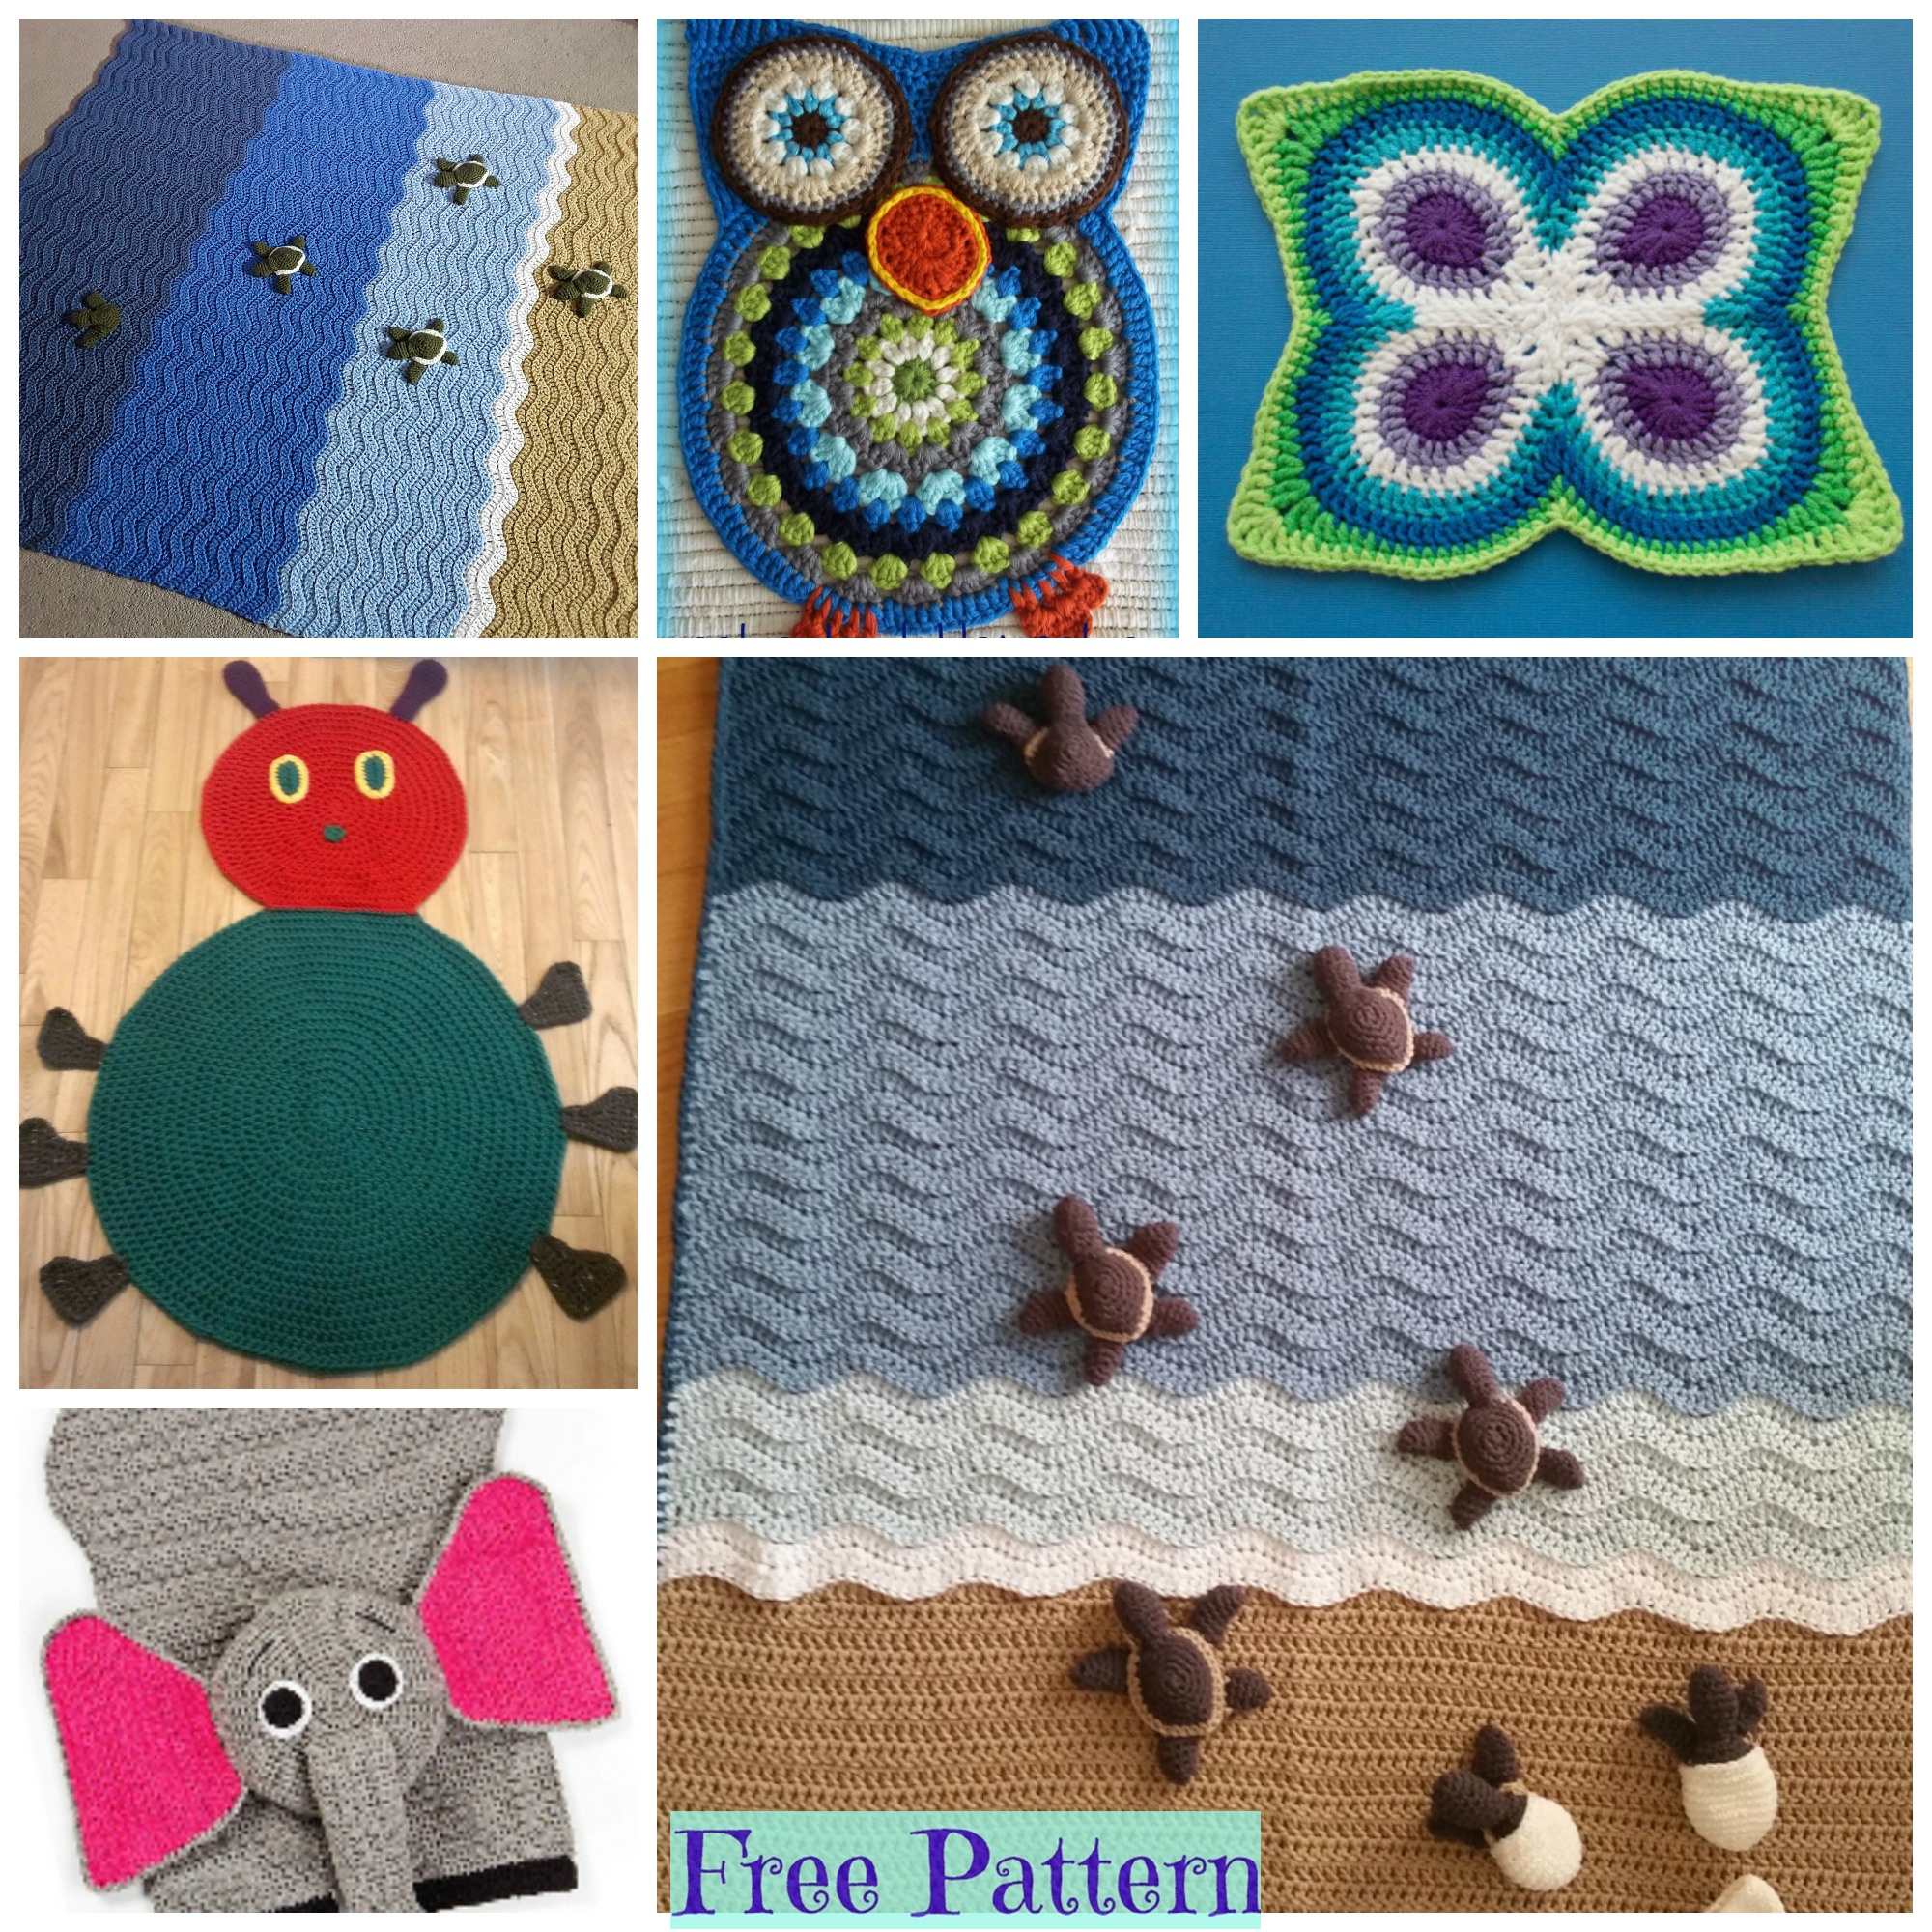 diy4ever-Crochet Animal Rugs - Free Patterns